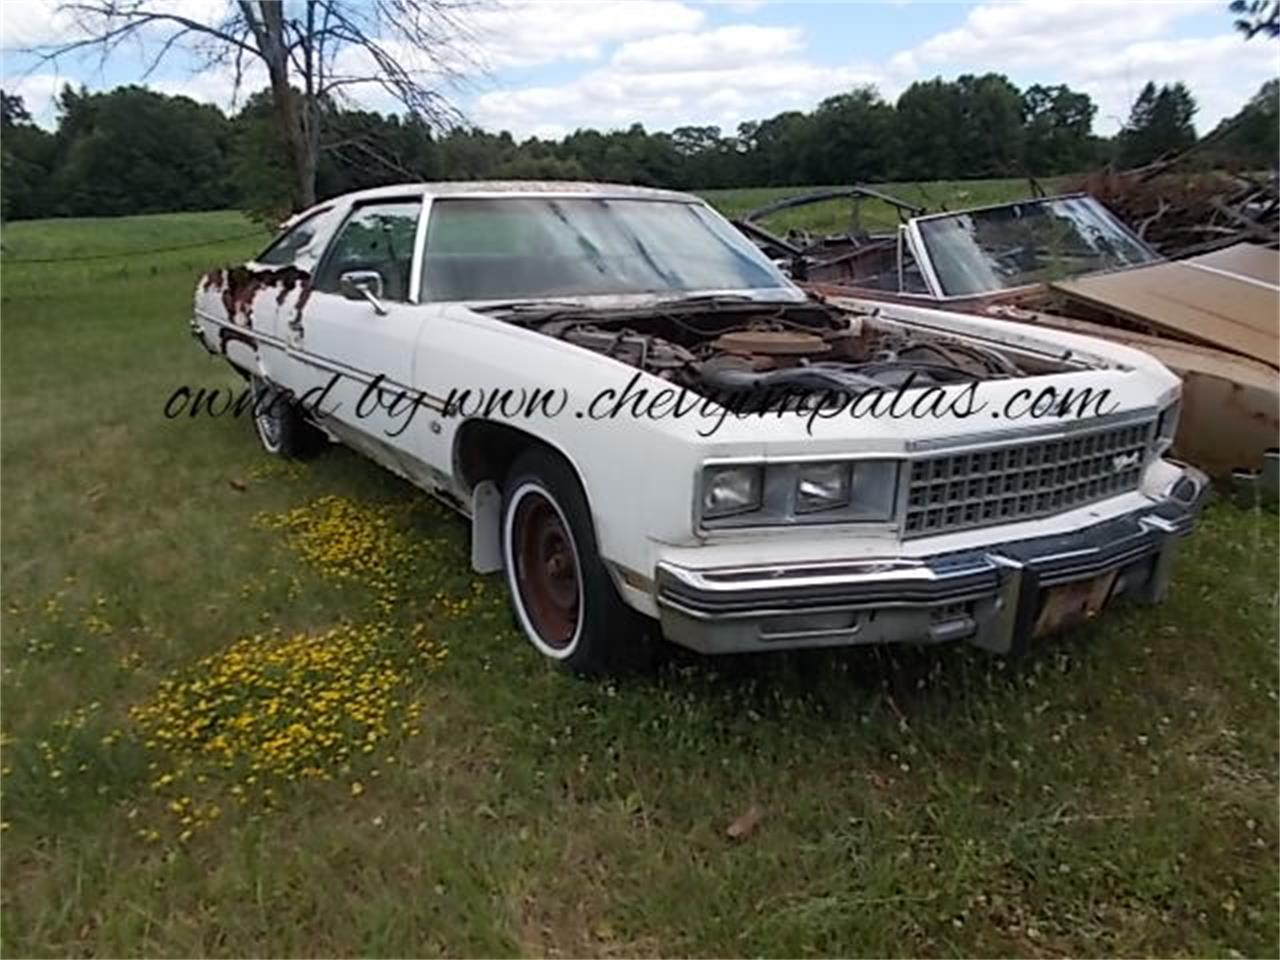 1976 Chevrolet Caprice (CC-1170898) for sale in Creston, Ohio